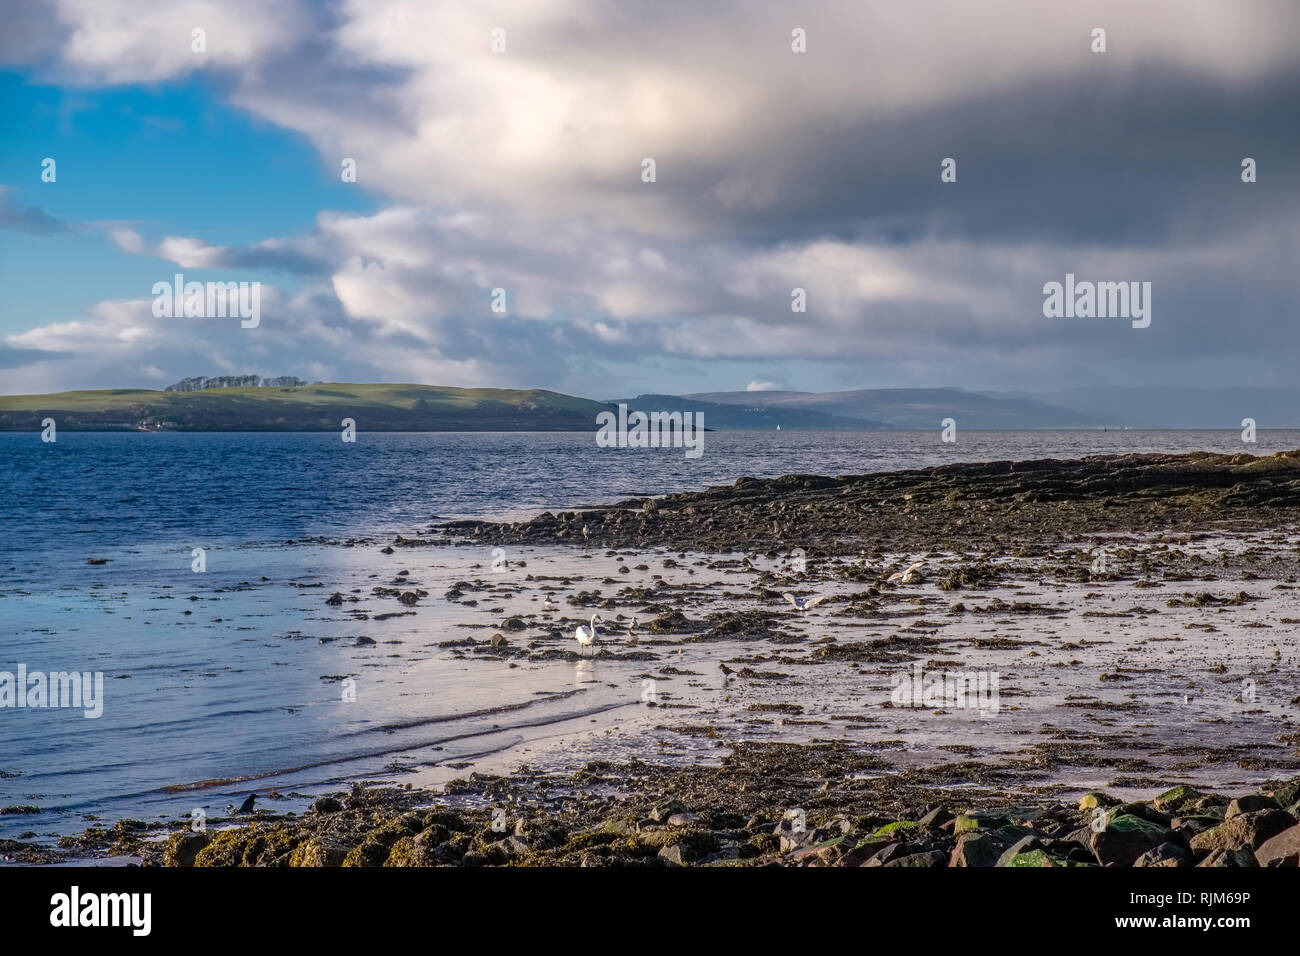 Largs Seaweed covered foreshore looking over to Cumbrae and Millport - Stock Image